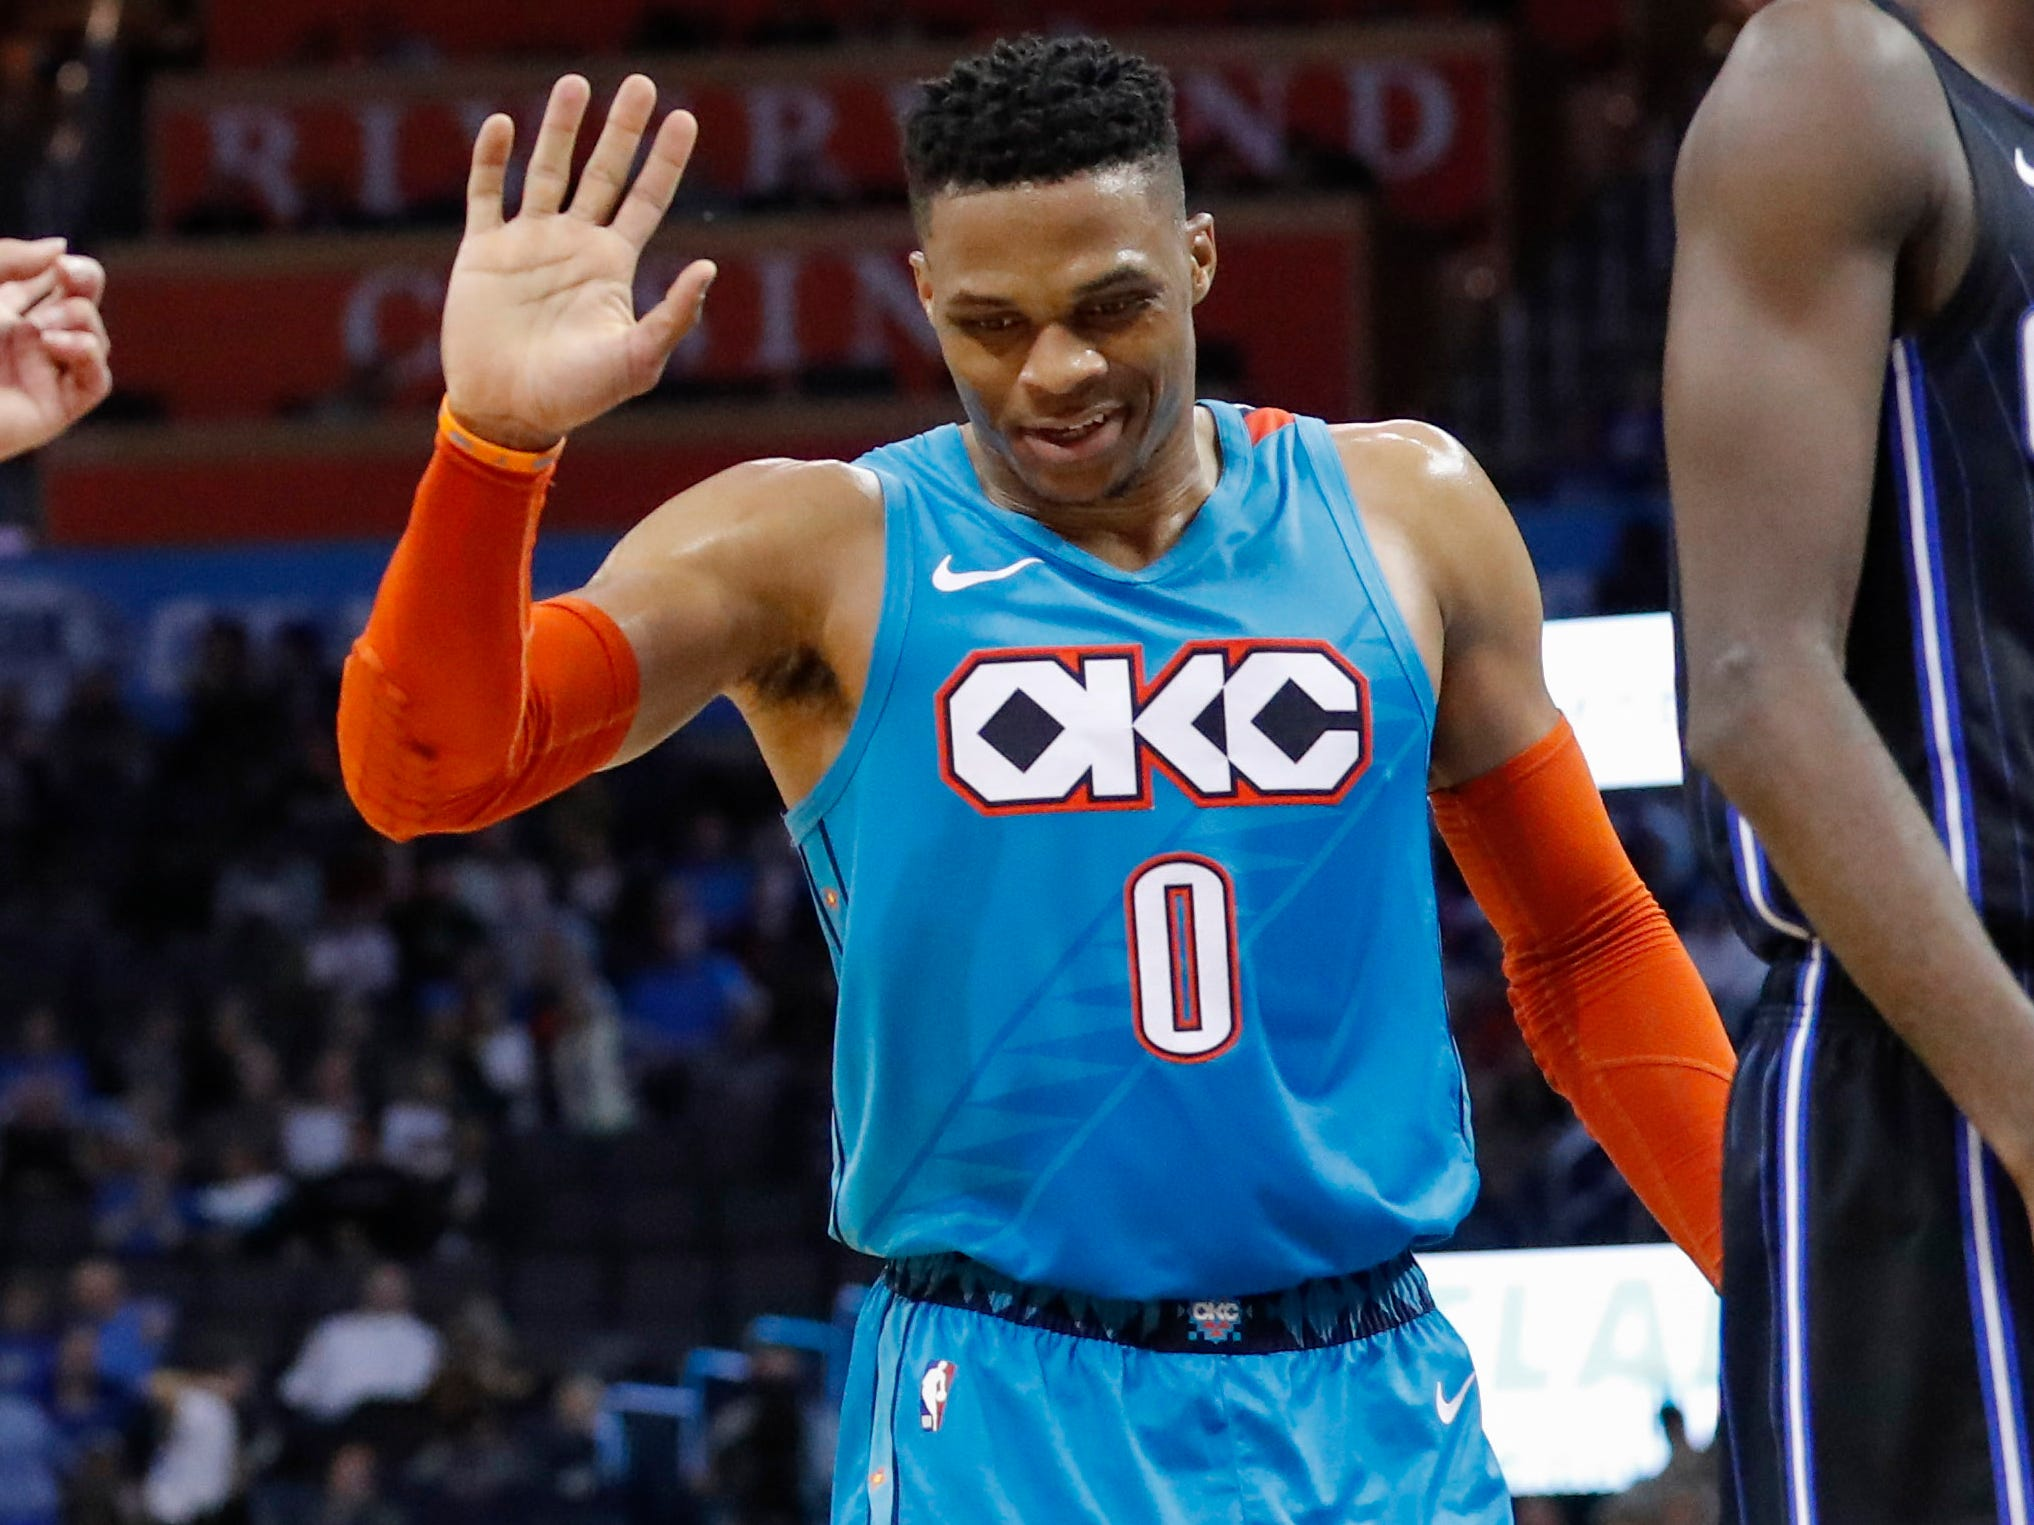 73. Russell Westbrook, Thunder (Feb. 5):16 points, 15 rebounds, 16 assists in 132-122 win over Magic (20th of season).